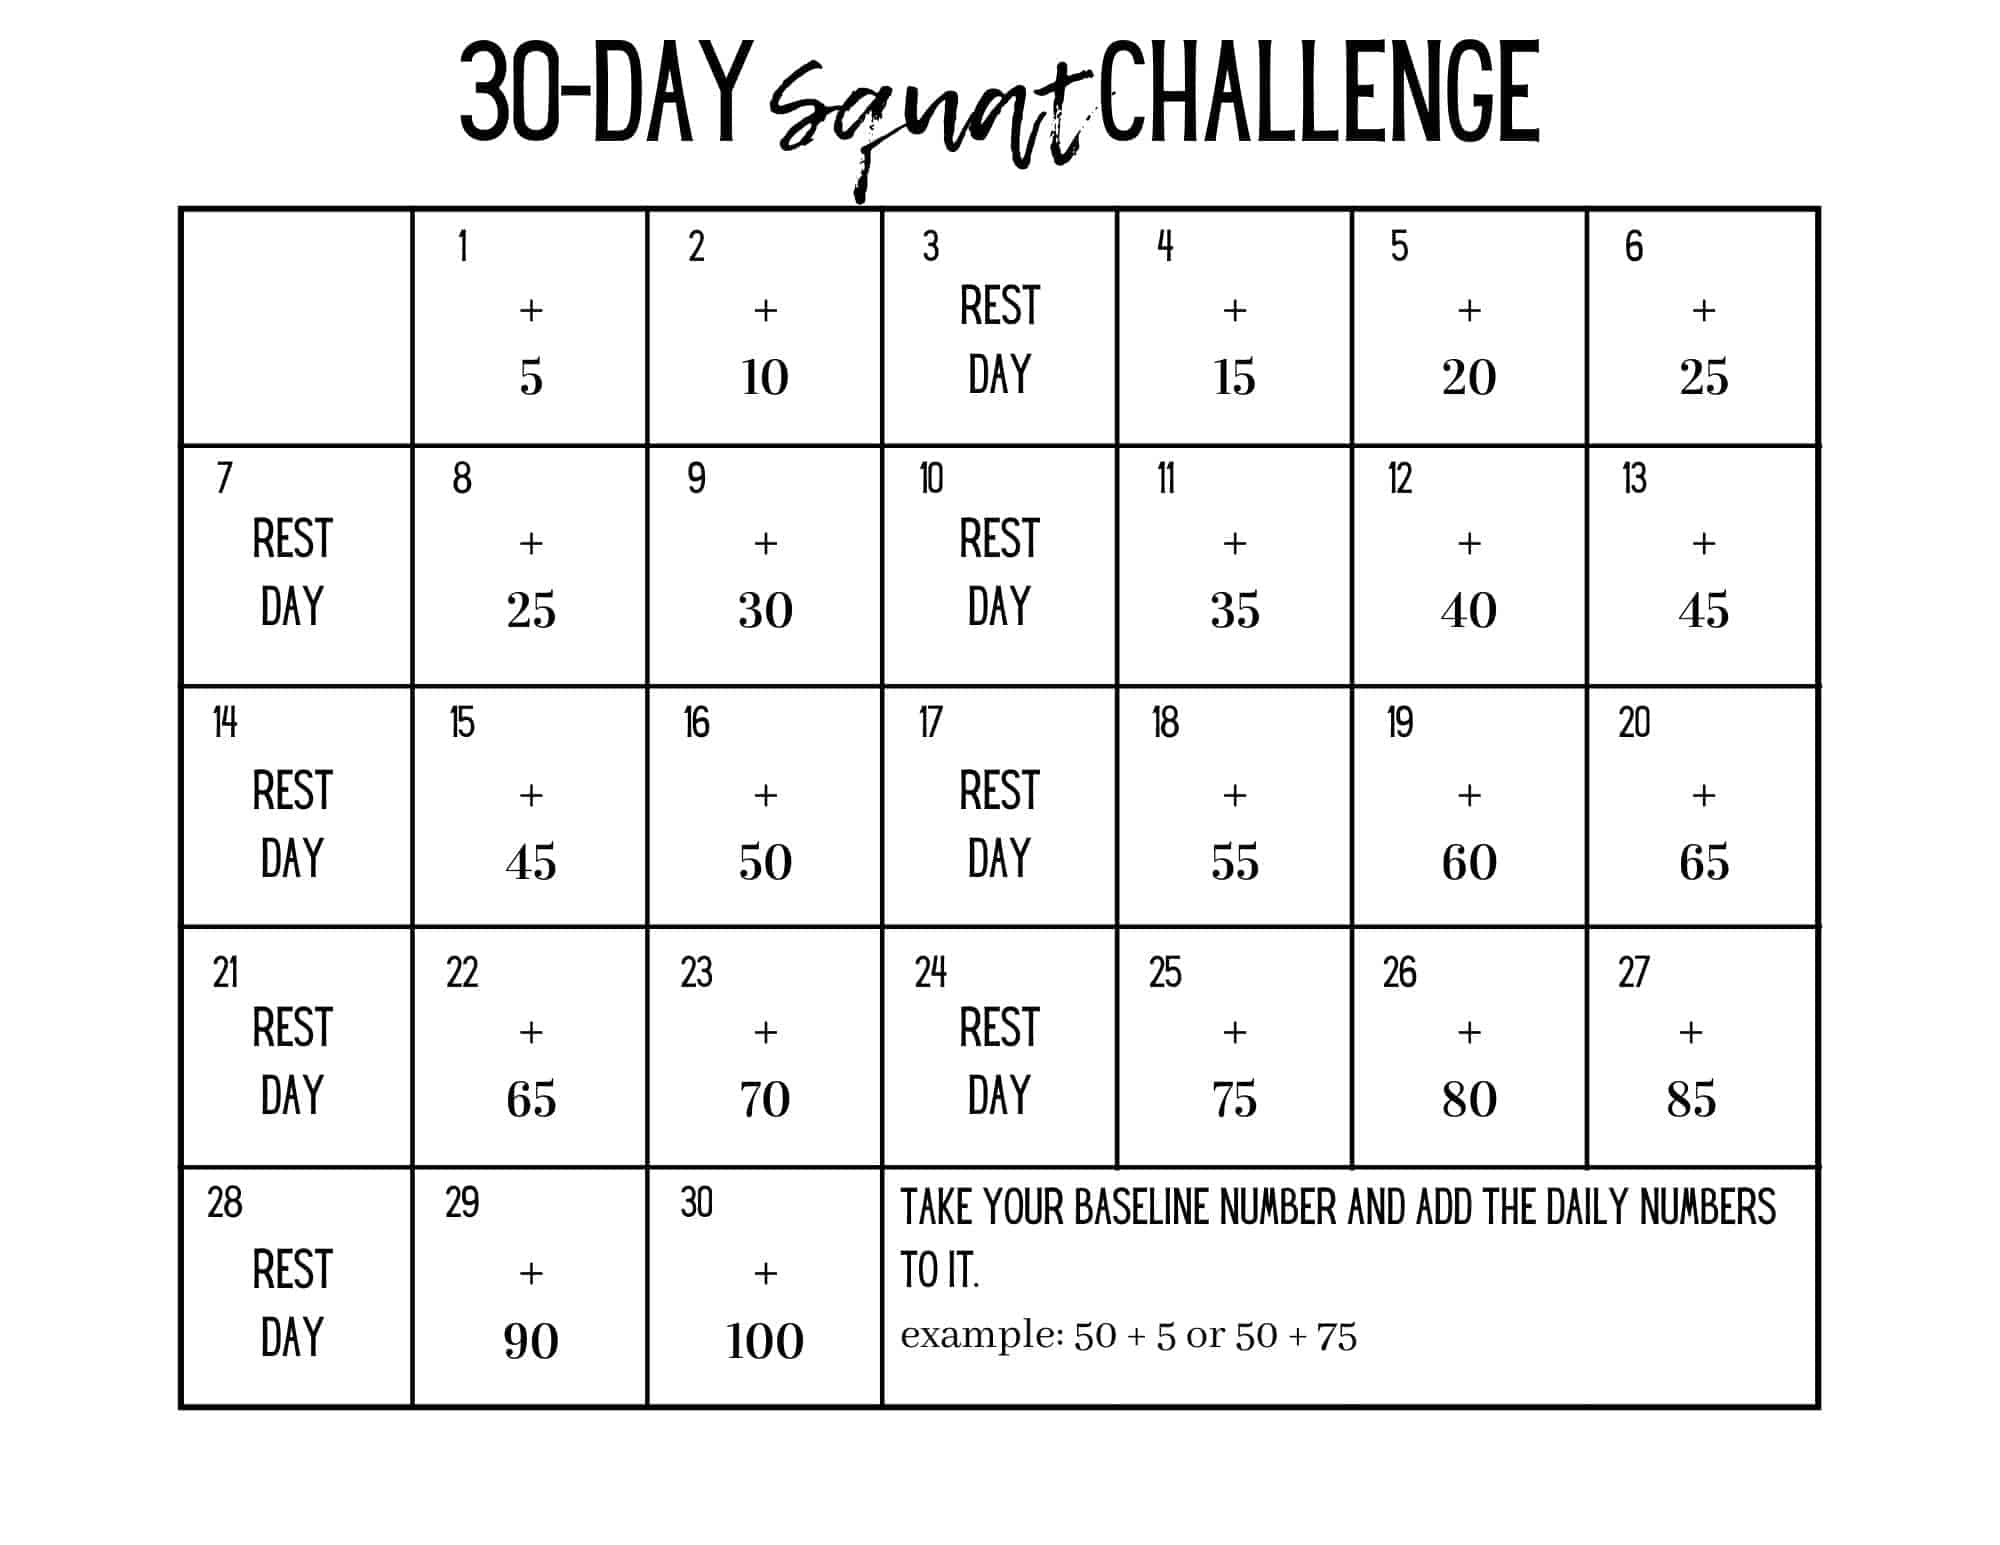 calendar of a 30-day squat challenge